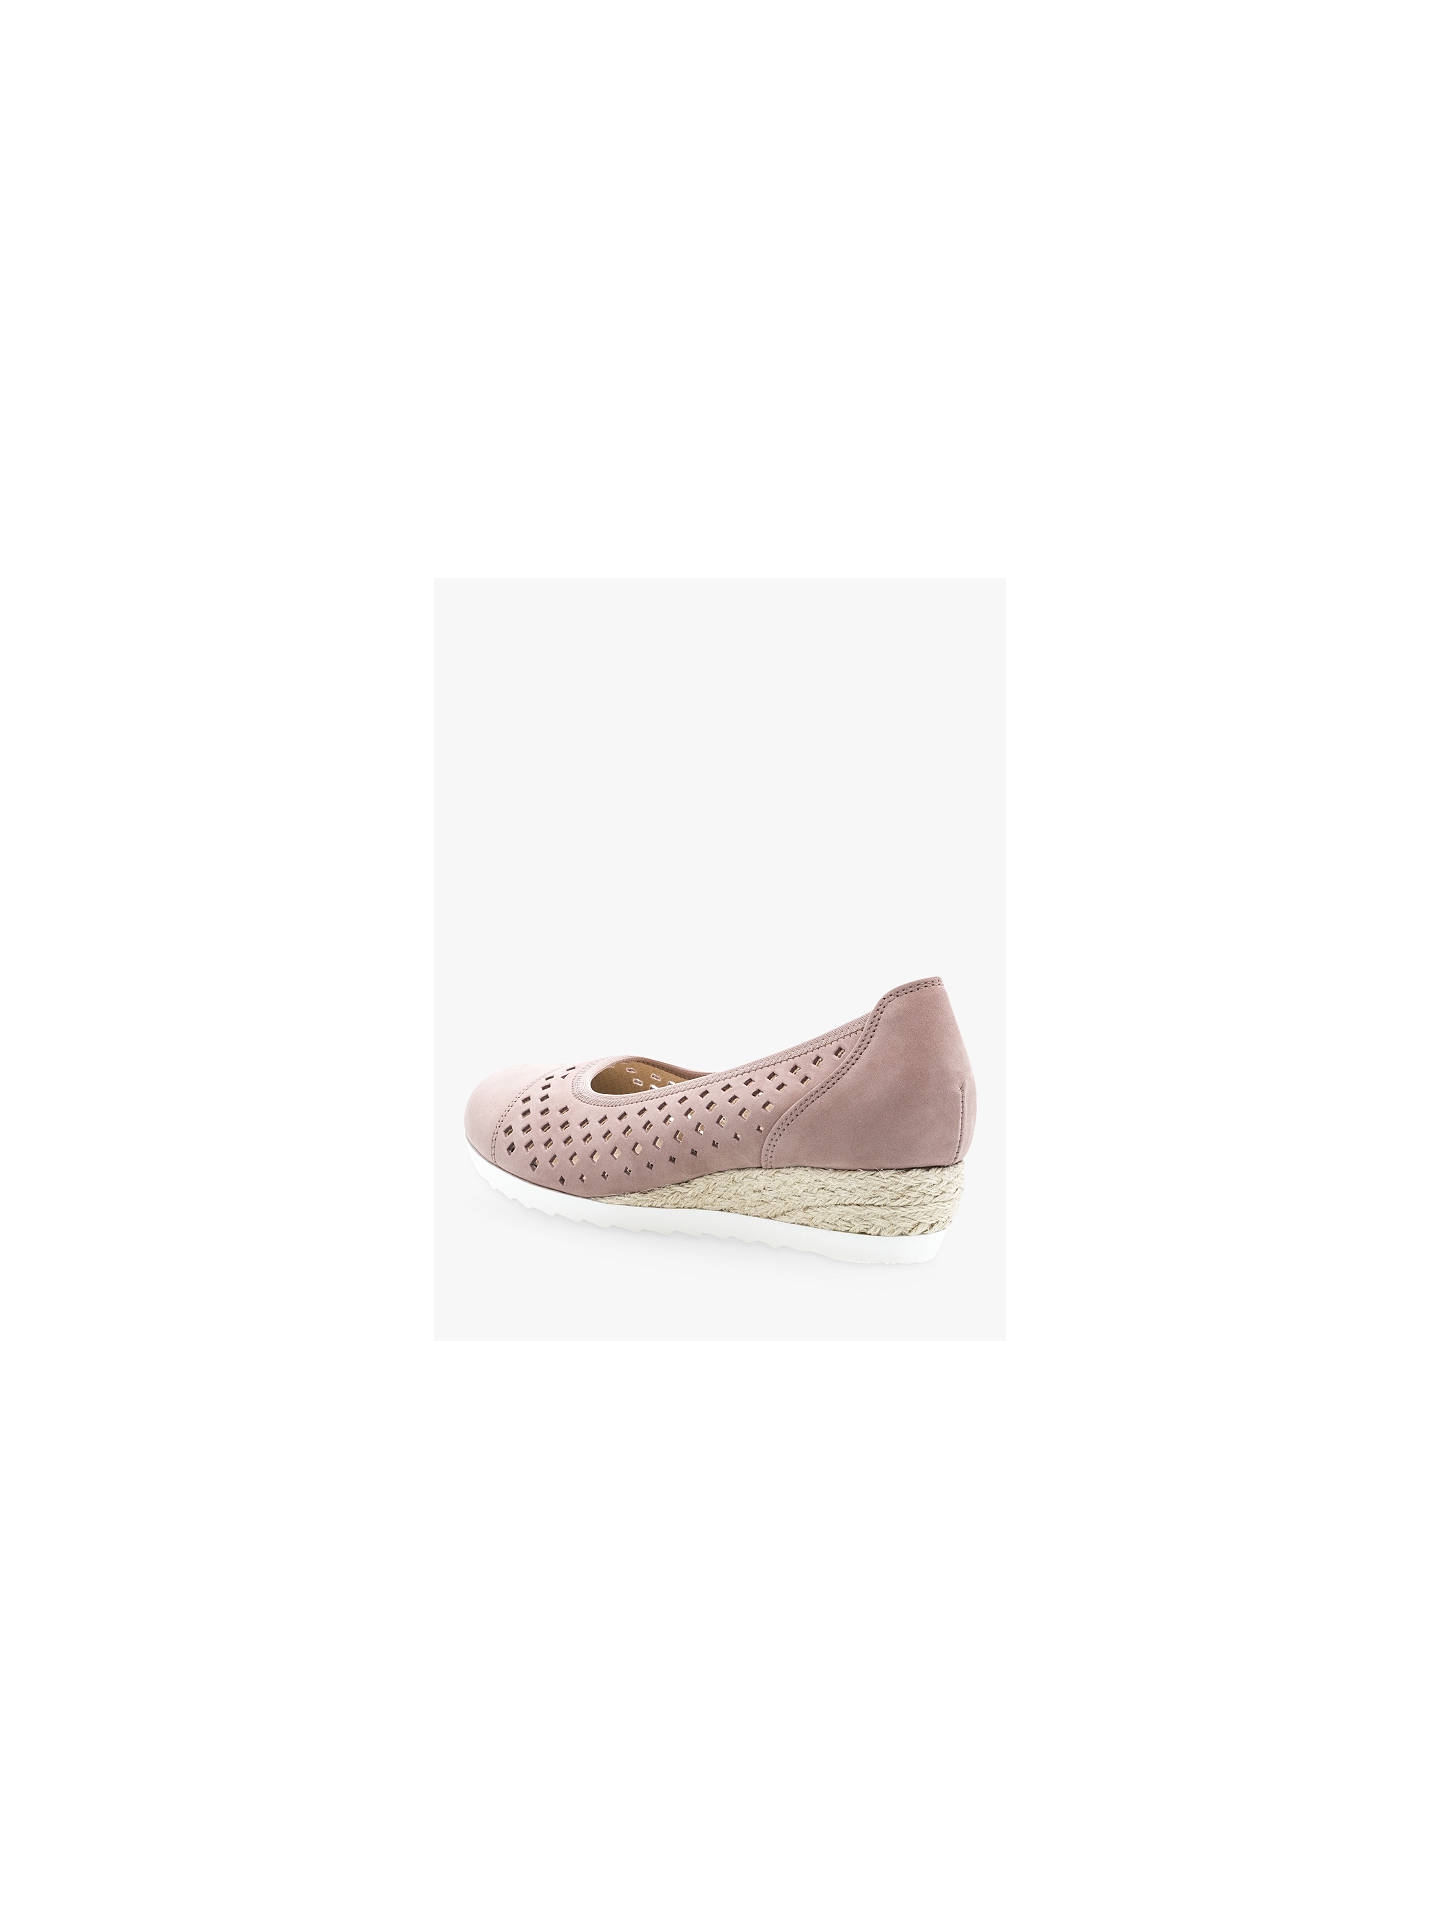 Gabor Evelyn Wide Fit Low Wedge Pumps at John Lewis & Partners